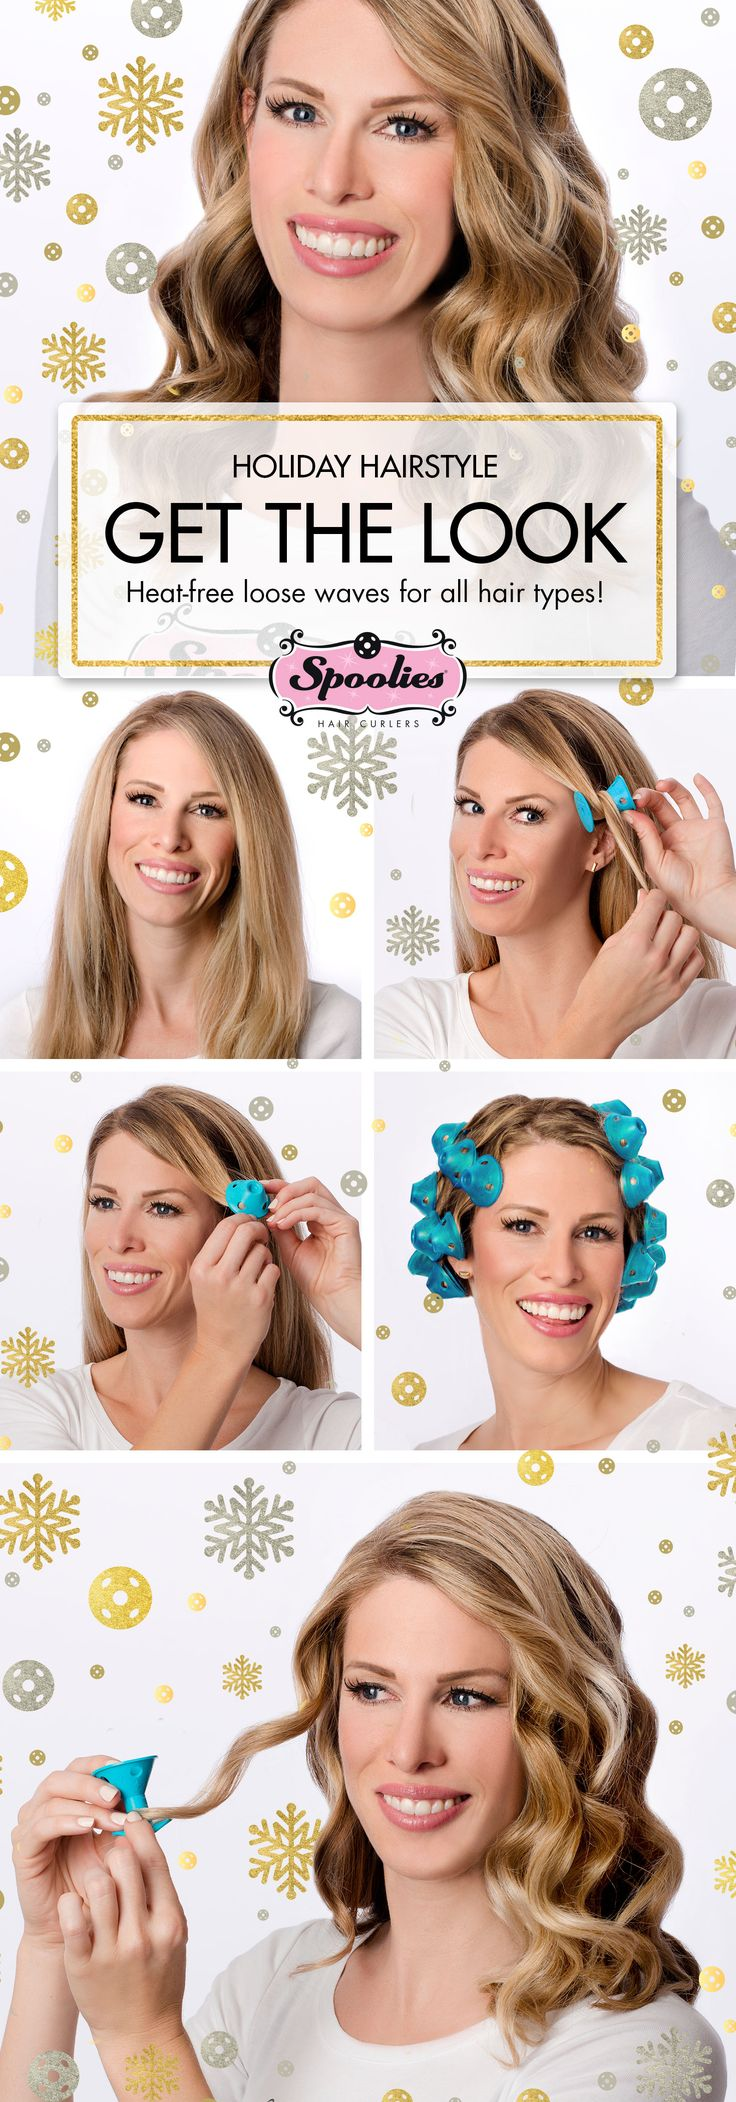 5 steps to soft holiday waves & curls with Spoolies heat-free hair curlers.